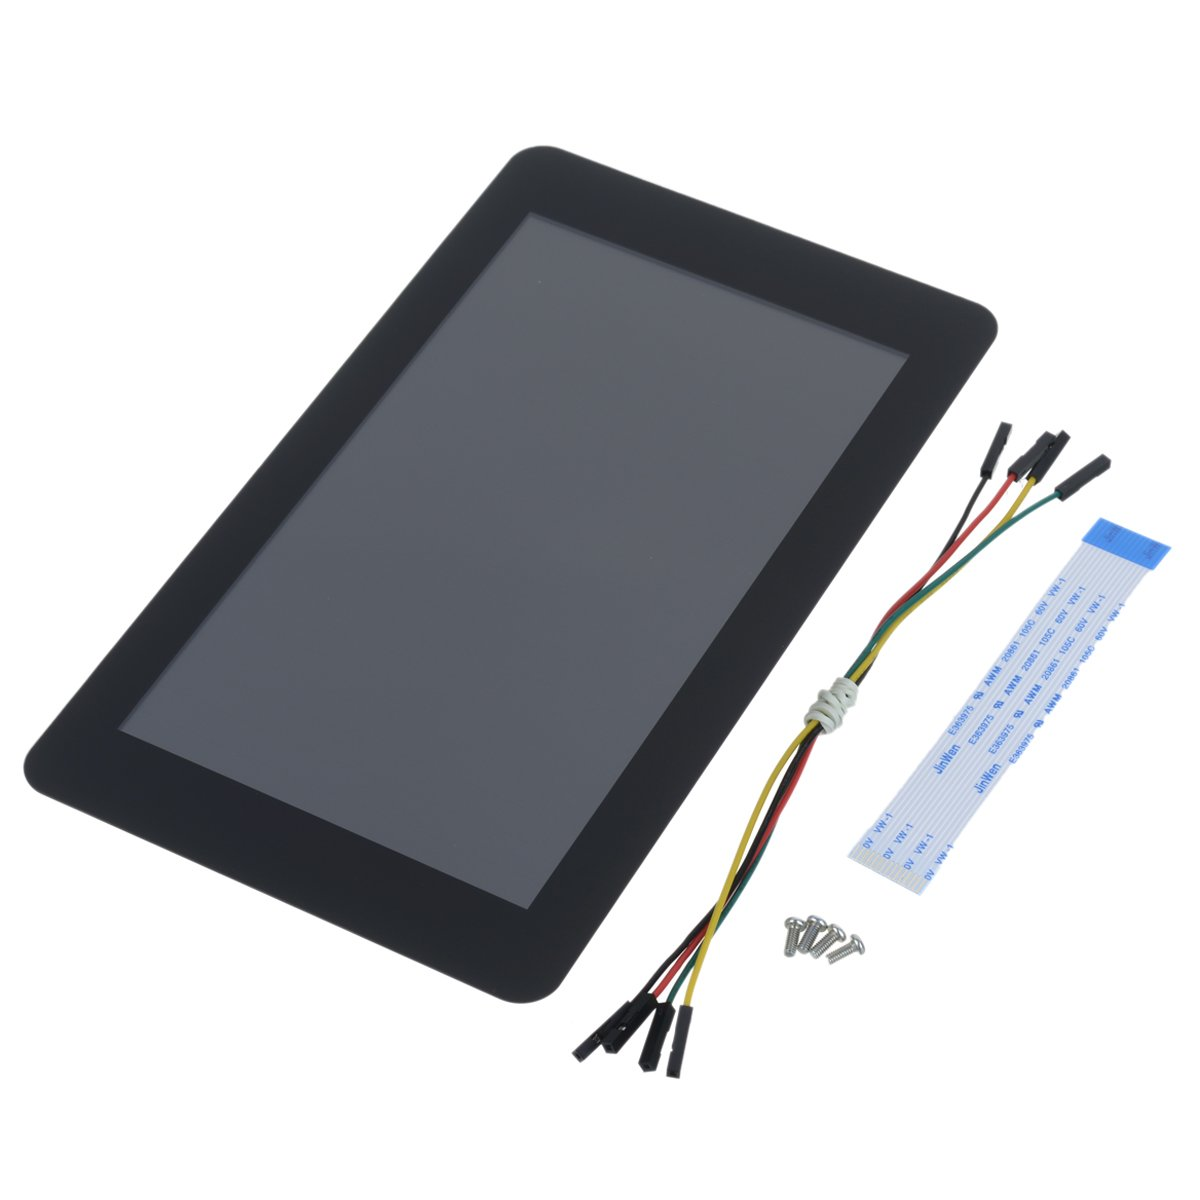 7'' 800 x 480 Touch Screen Display for Raspberry Pi 2B / B+/ A+ by OLSUS (Image #5)